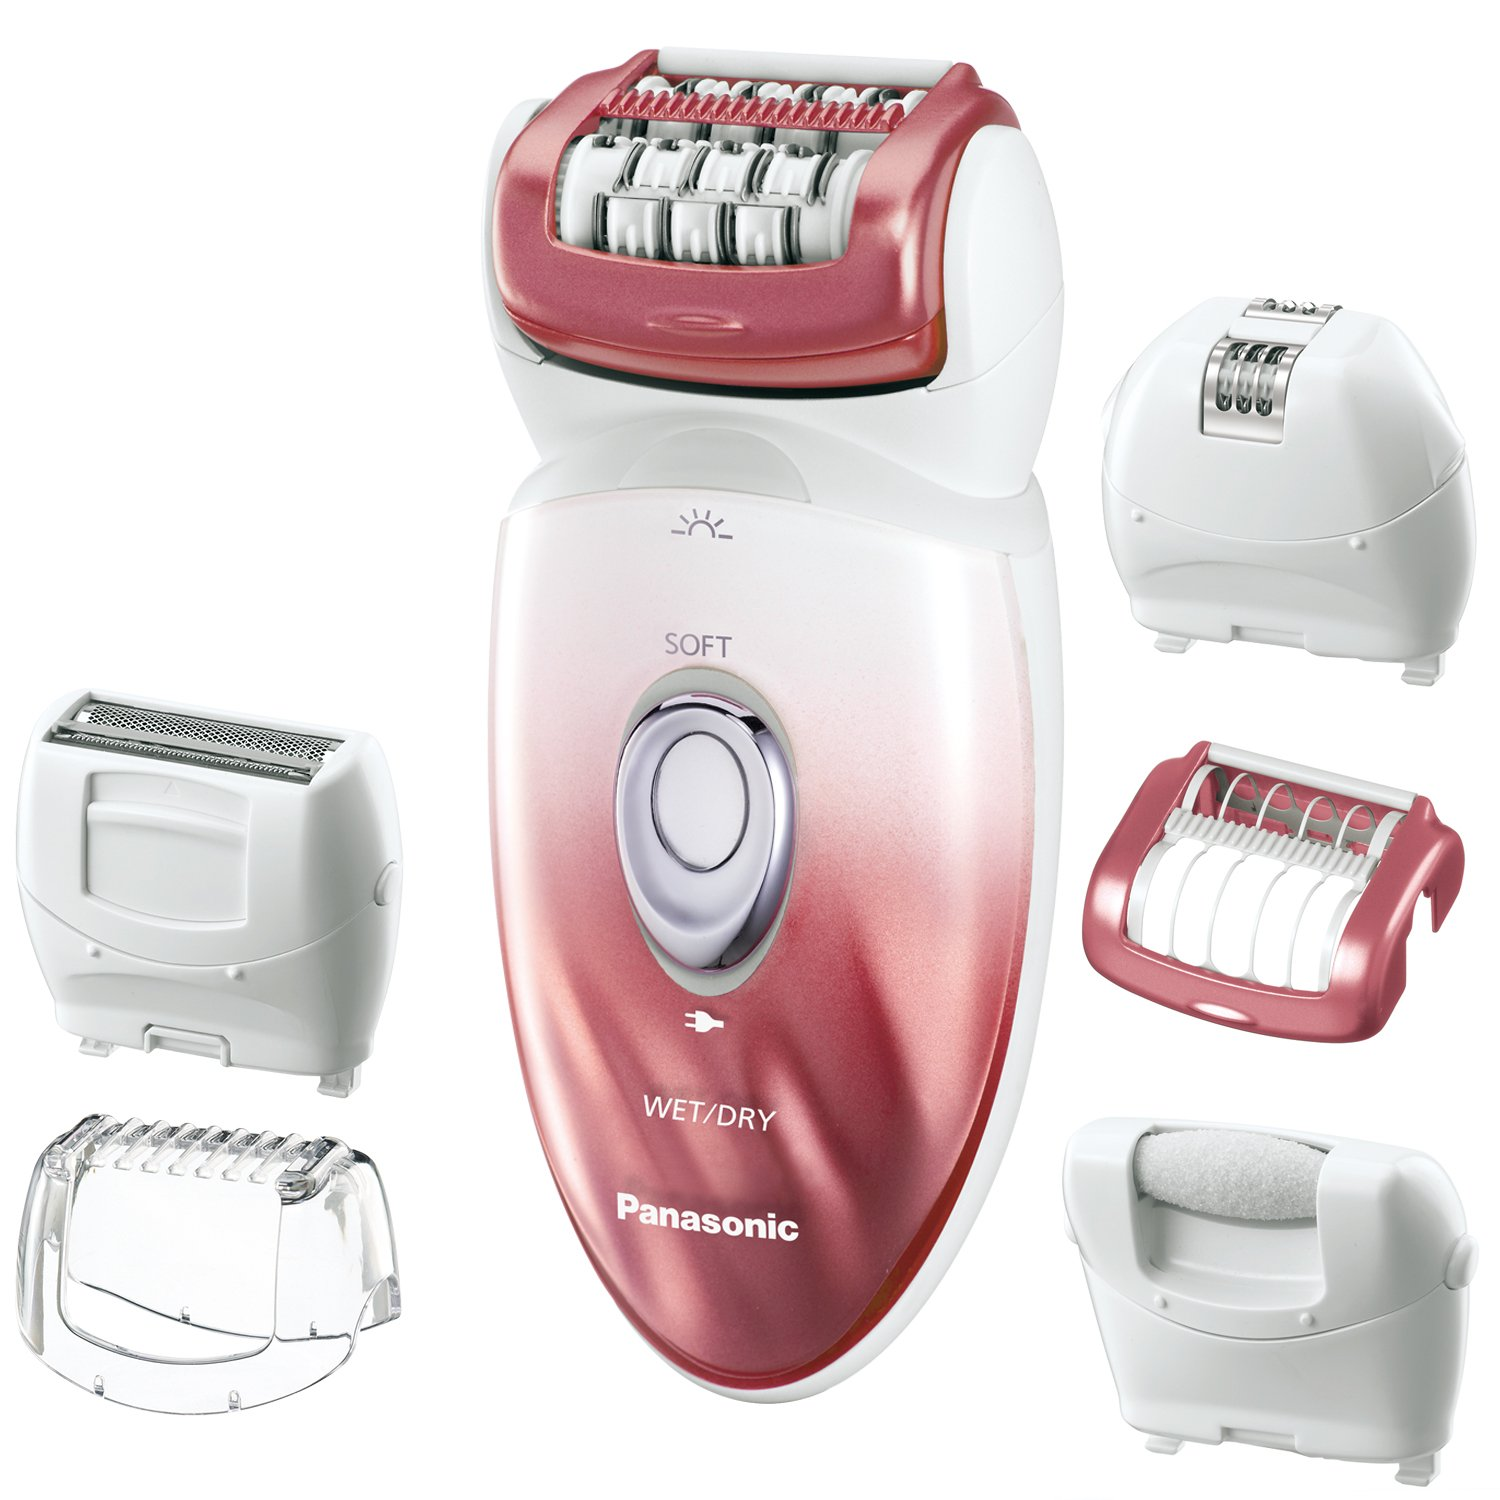 Panasonic ES-ED90-P Wet/Dry Epilator and Shaver, with Six Attachments including Pedicure Buffer for Foot Care by Panasonic